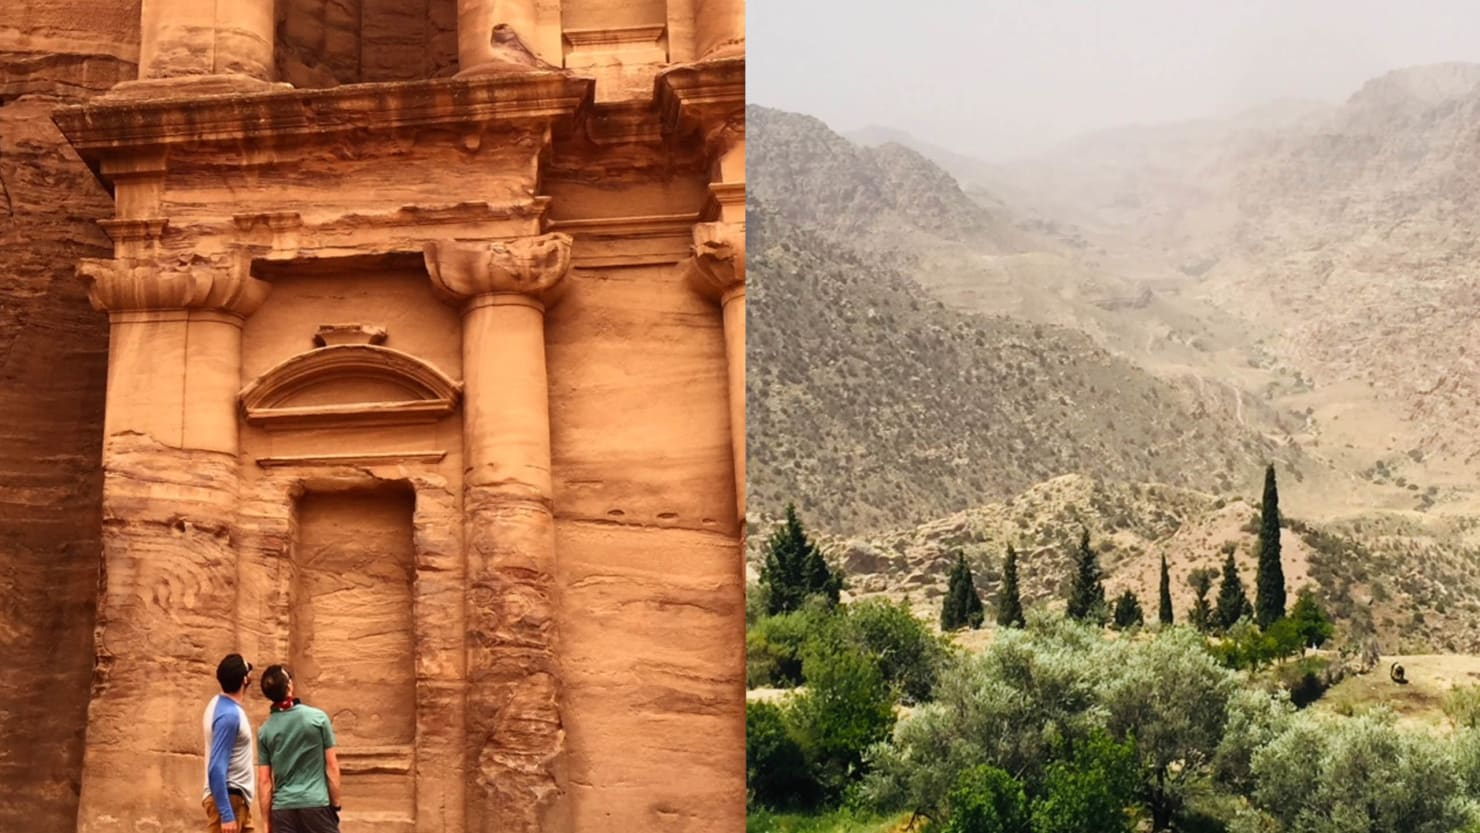 The Best Way to Get to Petra Is on One of World's Best Hikes